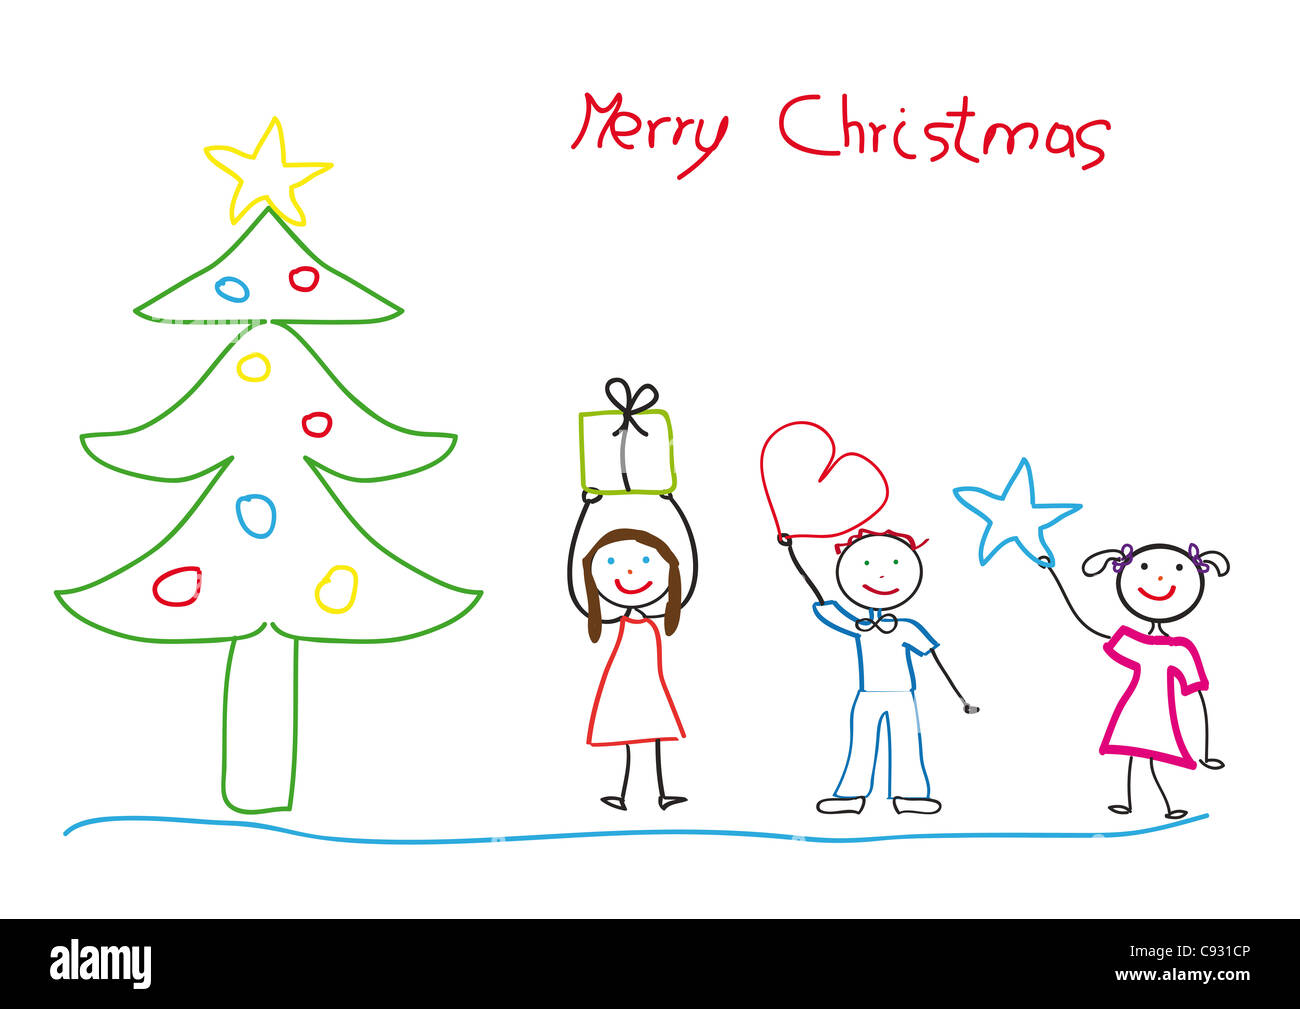 kids drawing with christmas tree and children stock photo alamy https www alamy com stock photo kids drawing with christmas tree and children 40019638 html